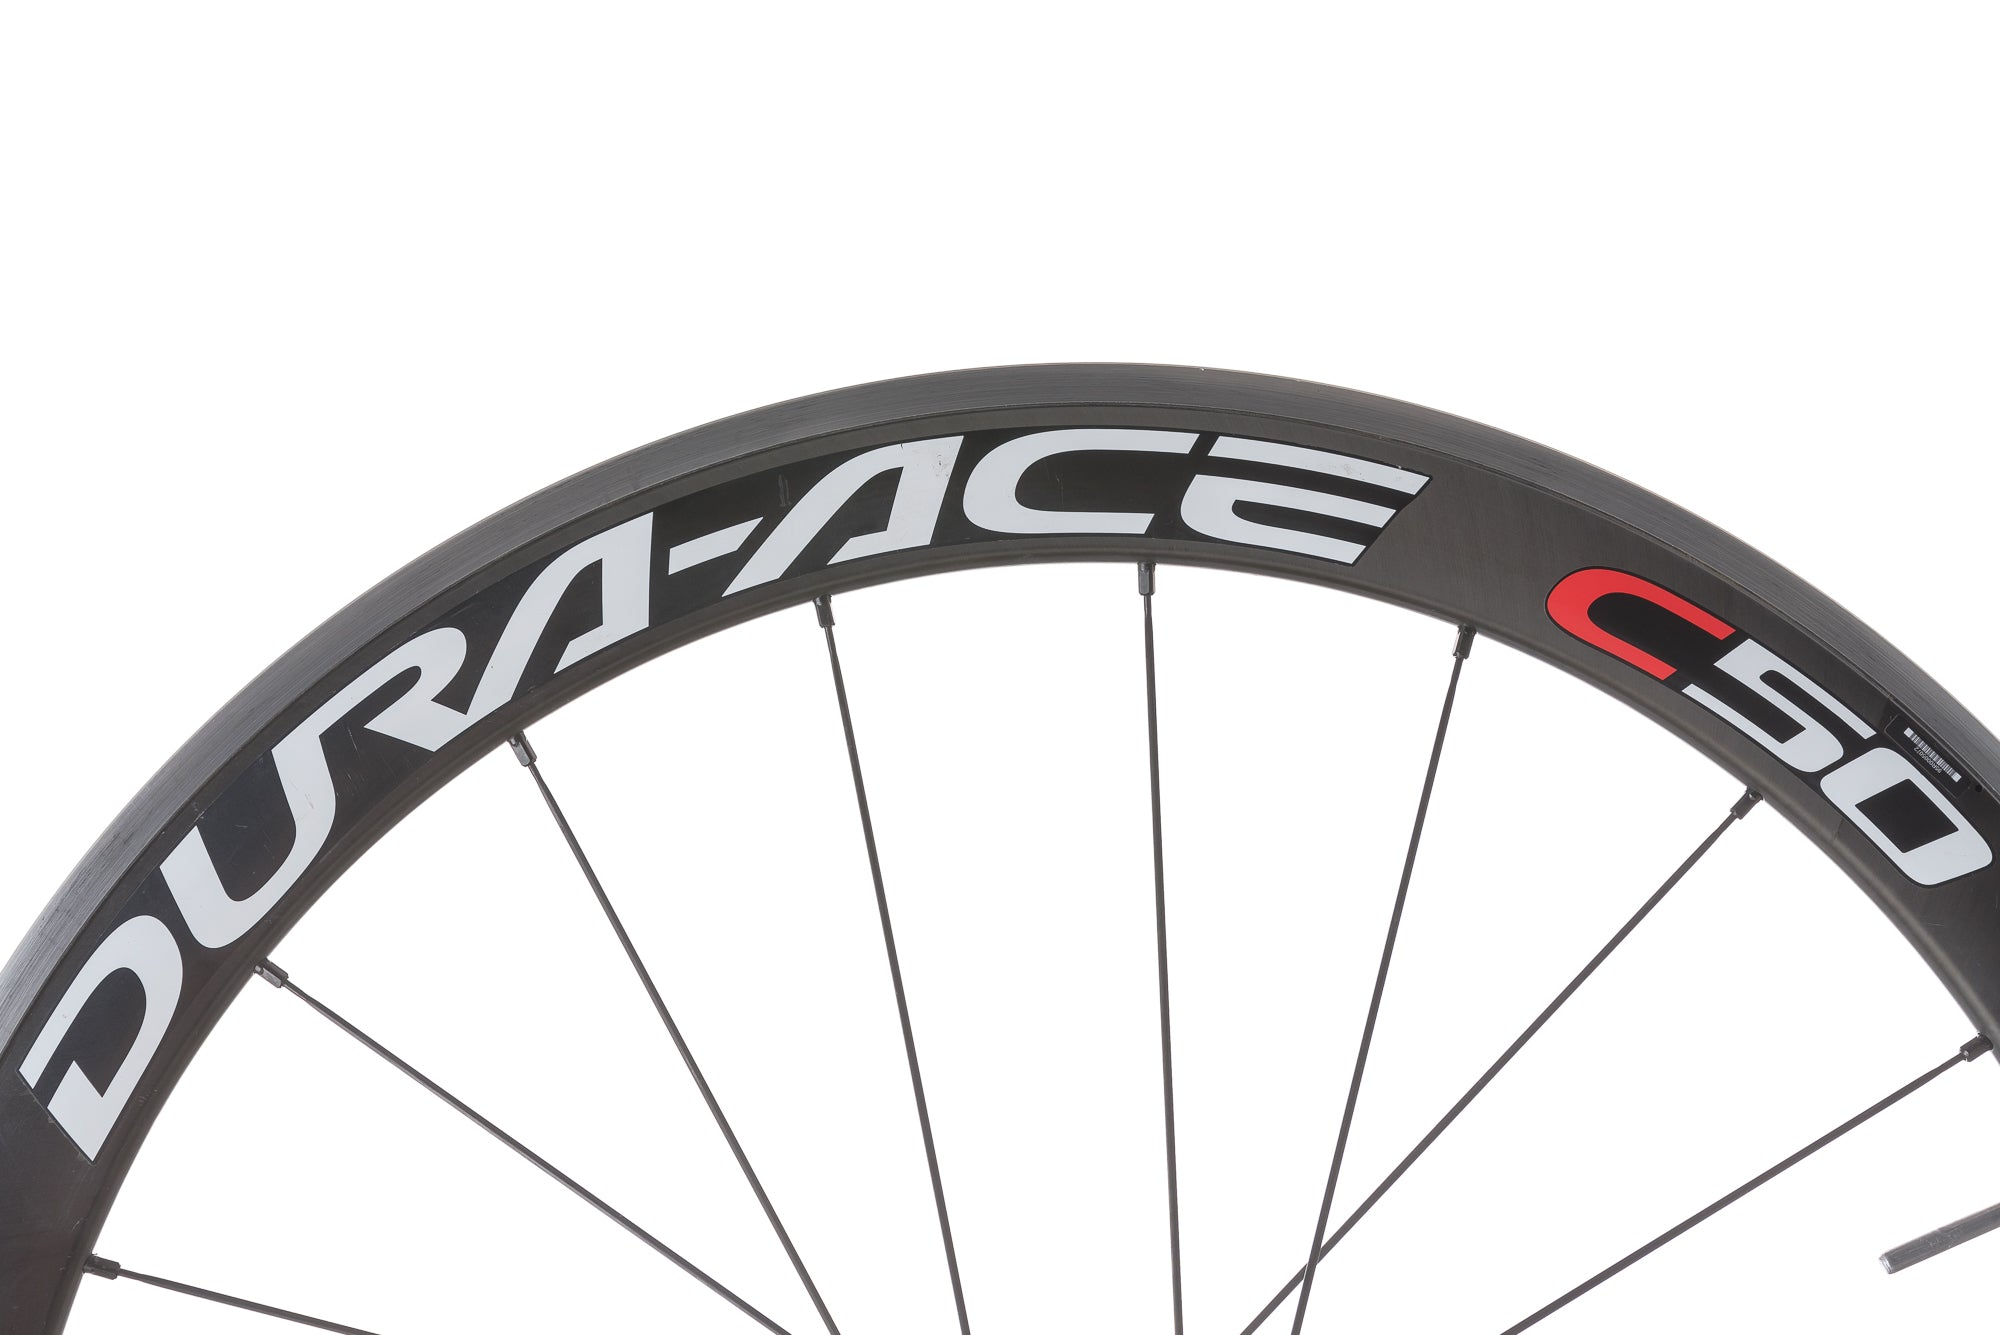 Dura-Ace C50 WH-7900 Carbon Clincher 700c Wheelset